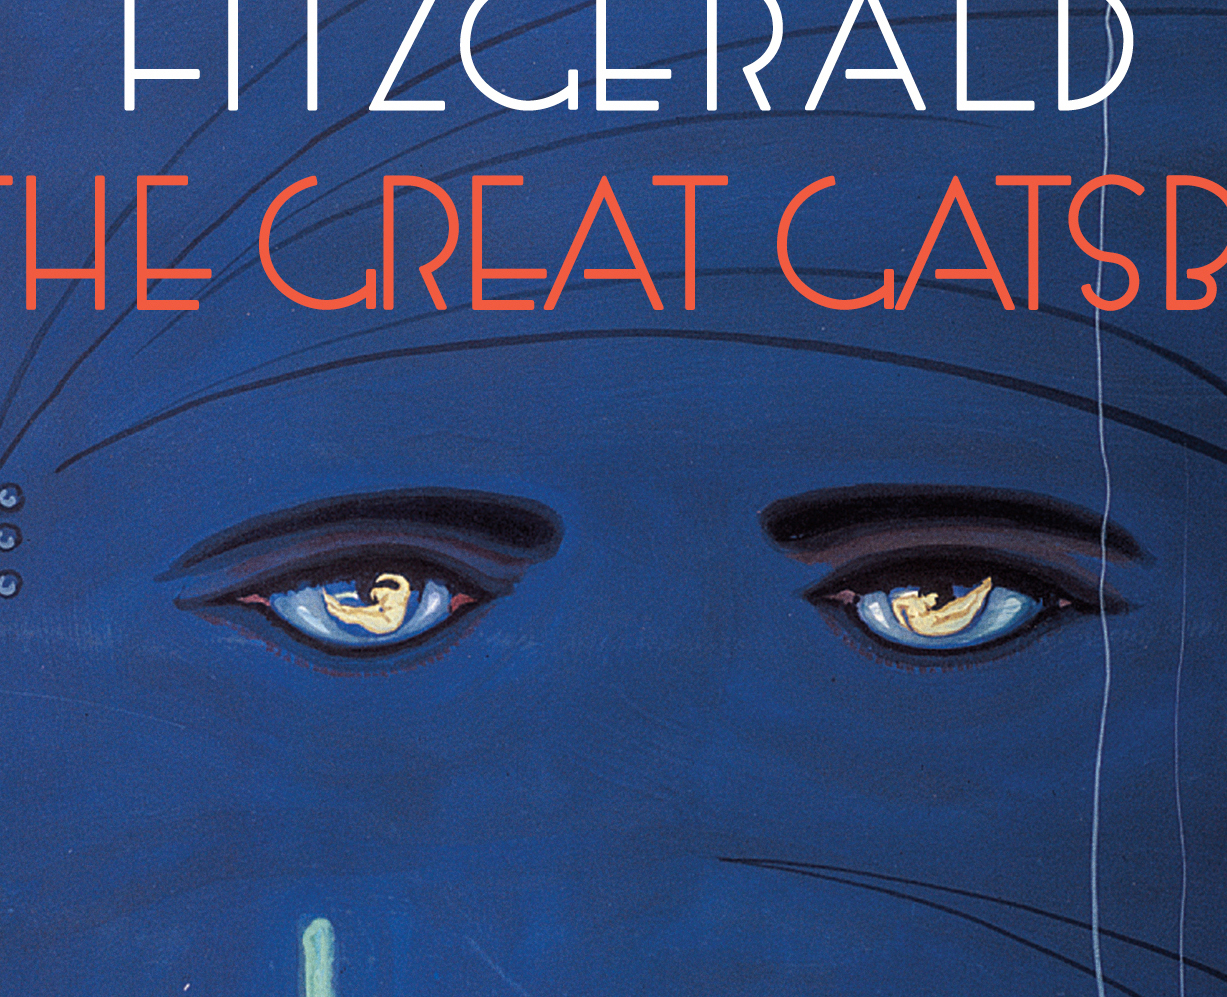 the great gatsby their eyes were Students read the novel their eyes were watching god by zora neale  students read the great gatsby and other literature that explores the notion of the american.